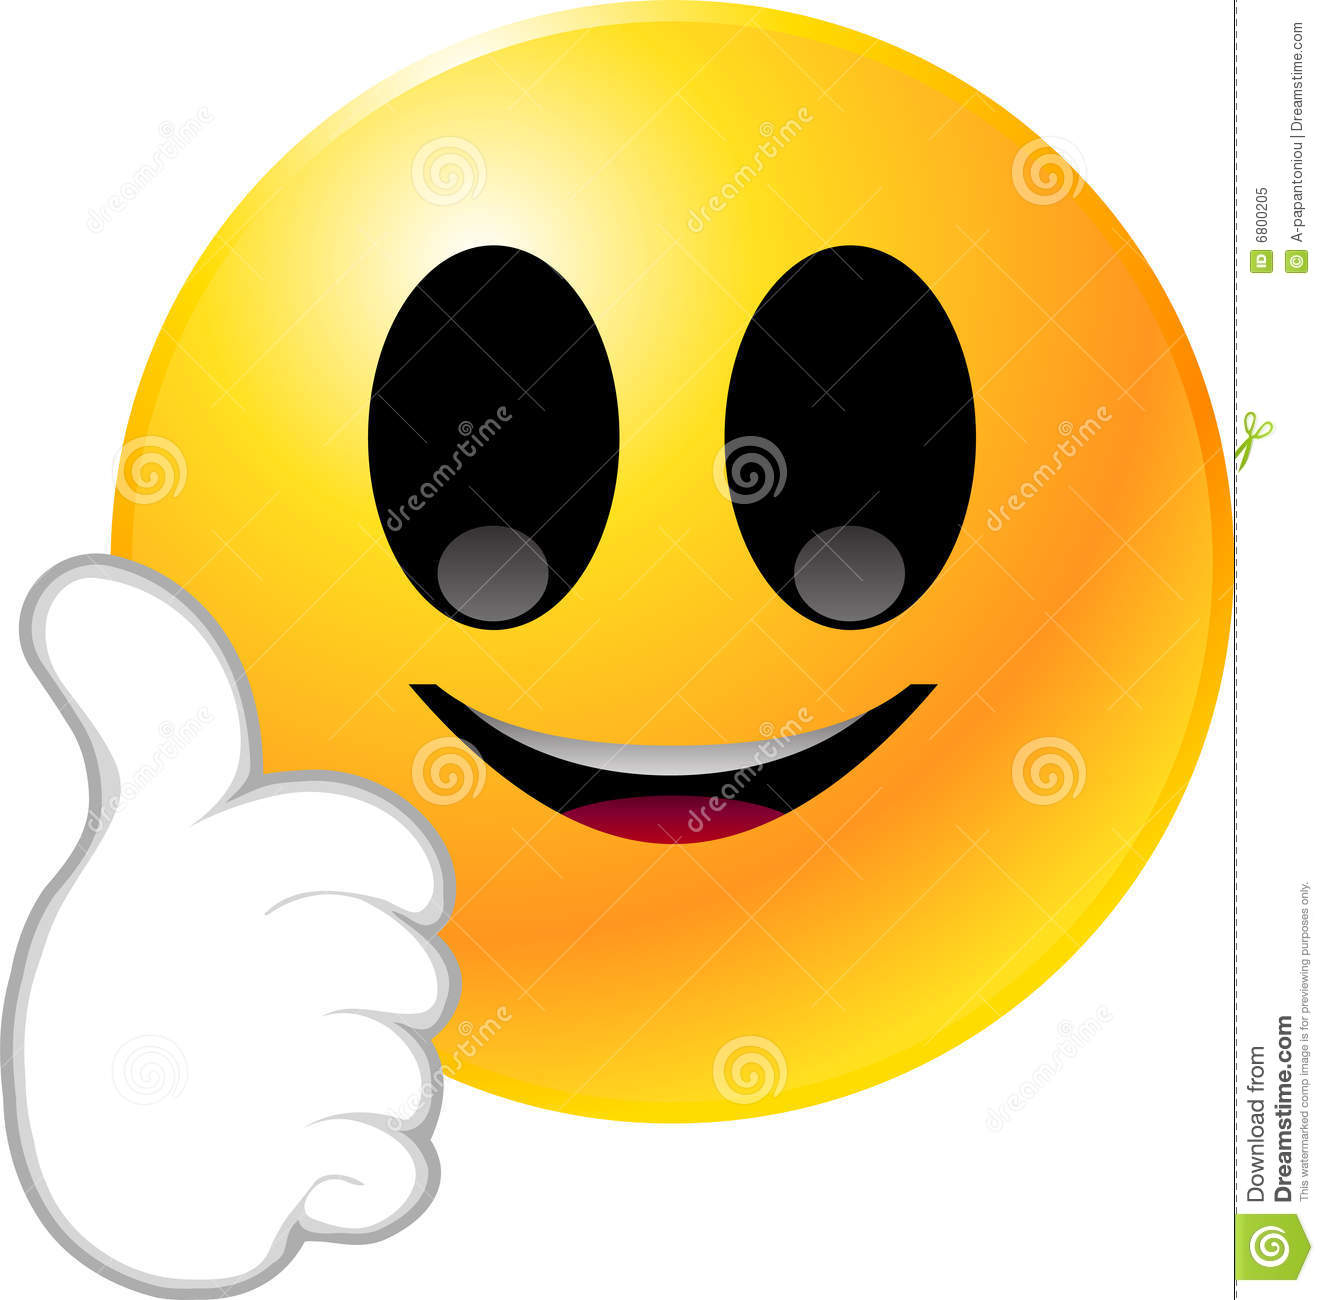 Smiley-Face Emoticons Clip Art Free